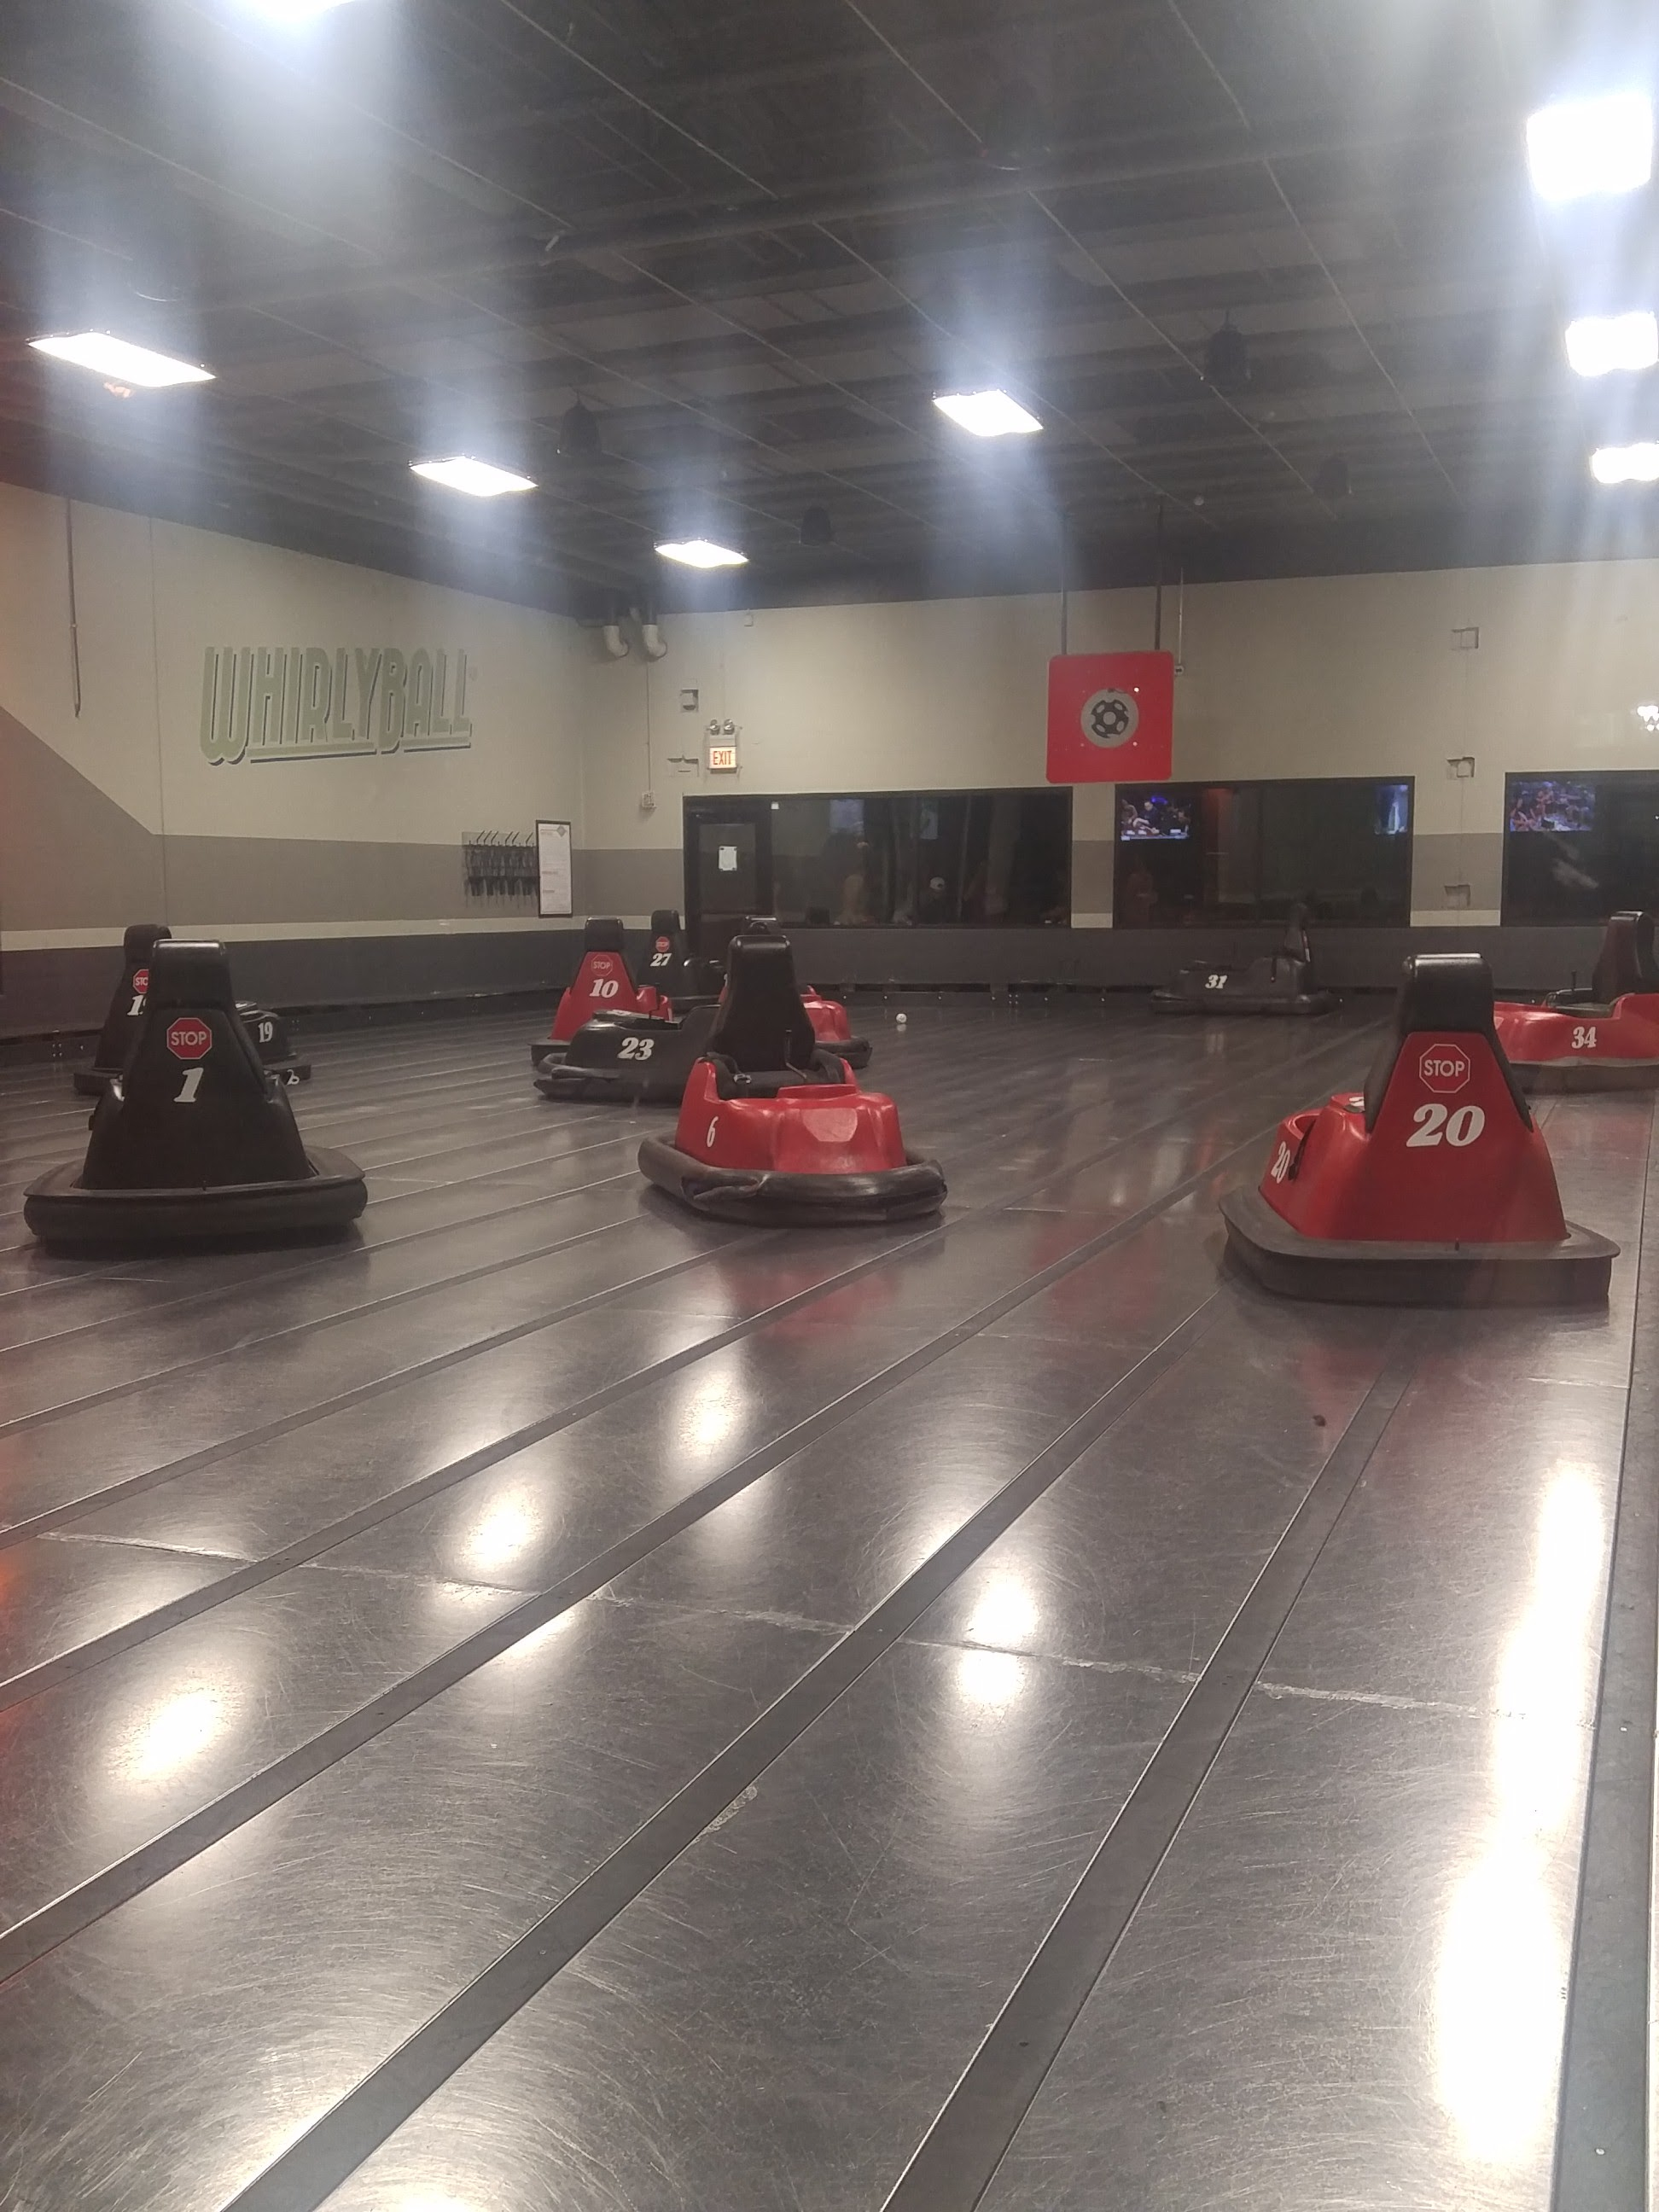 Whirlyball. I did not get to this one but walked by it and want to go even more!